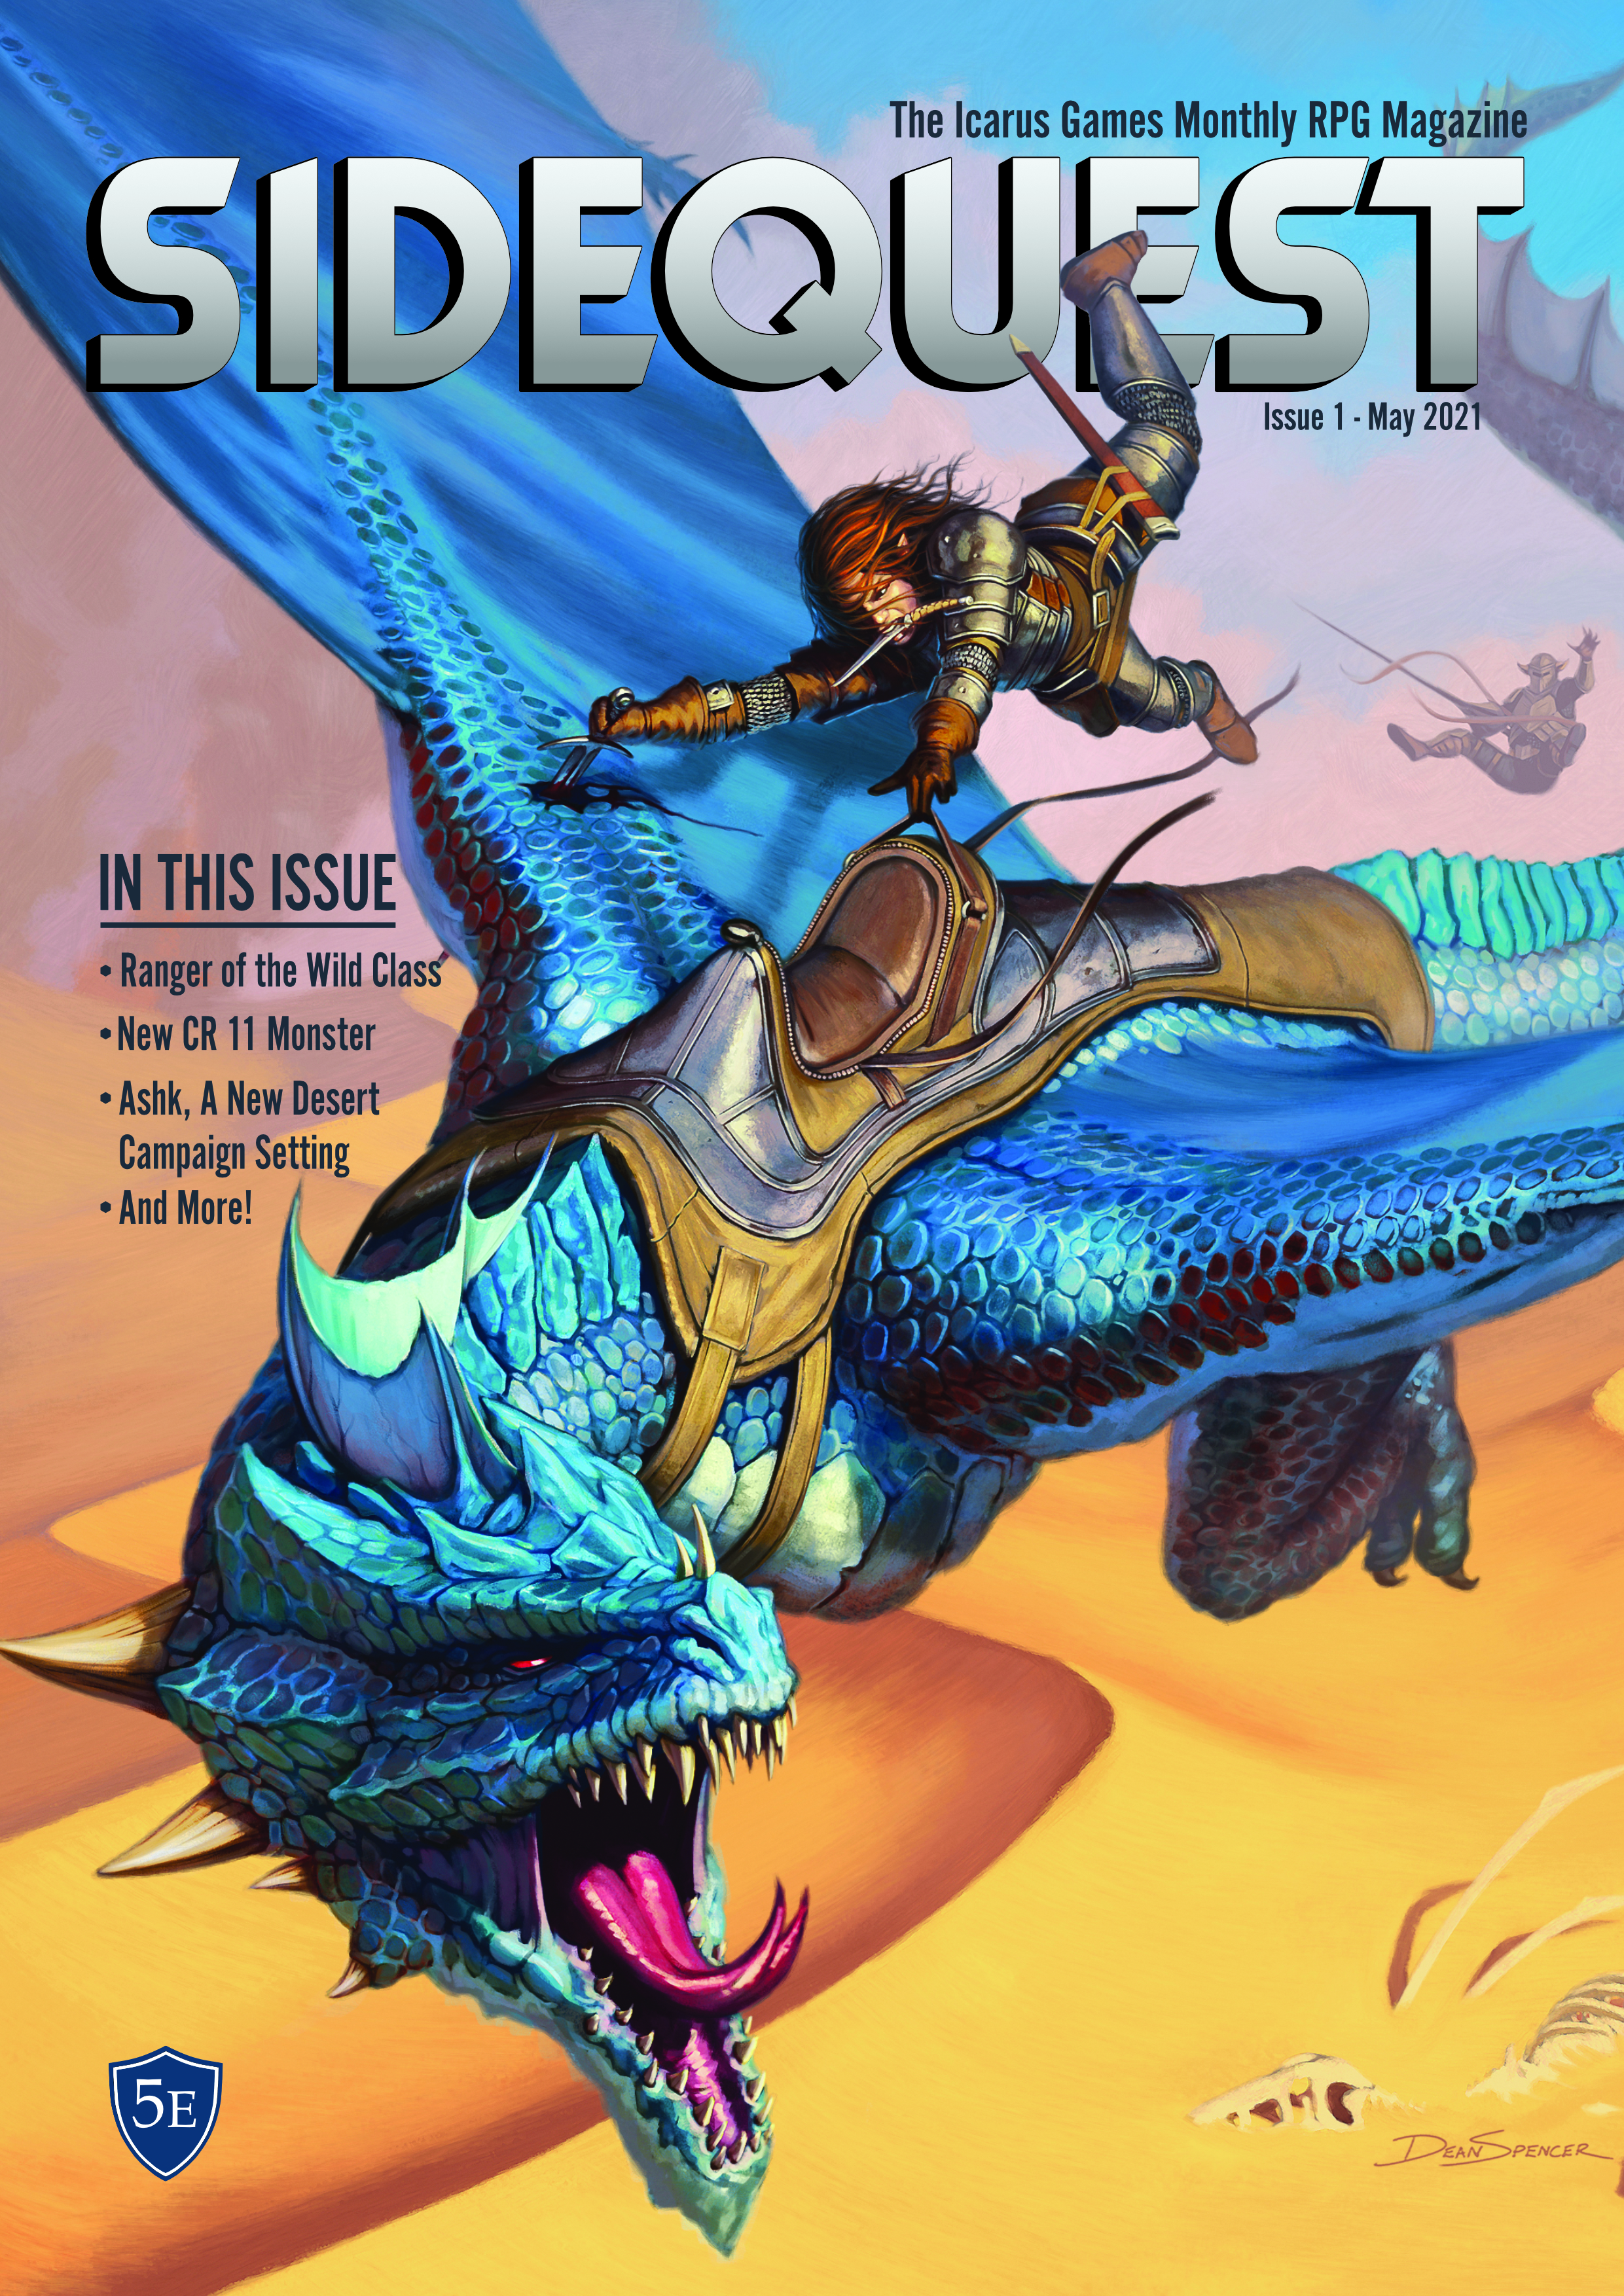 Sidequest Issue 1 Cover_1.jpg